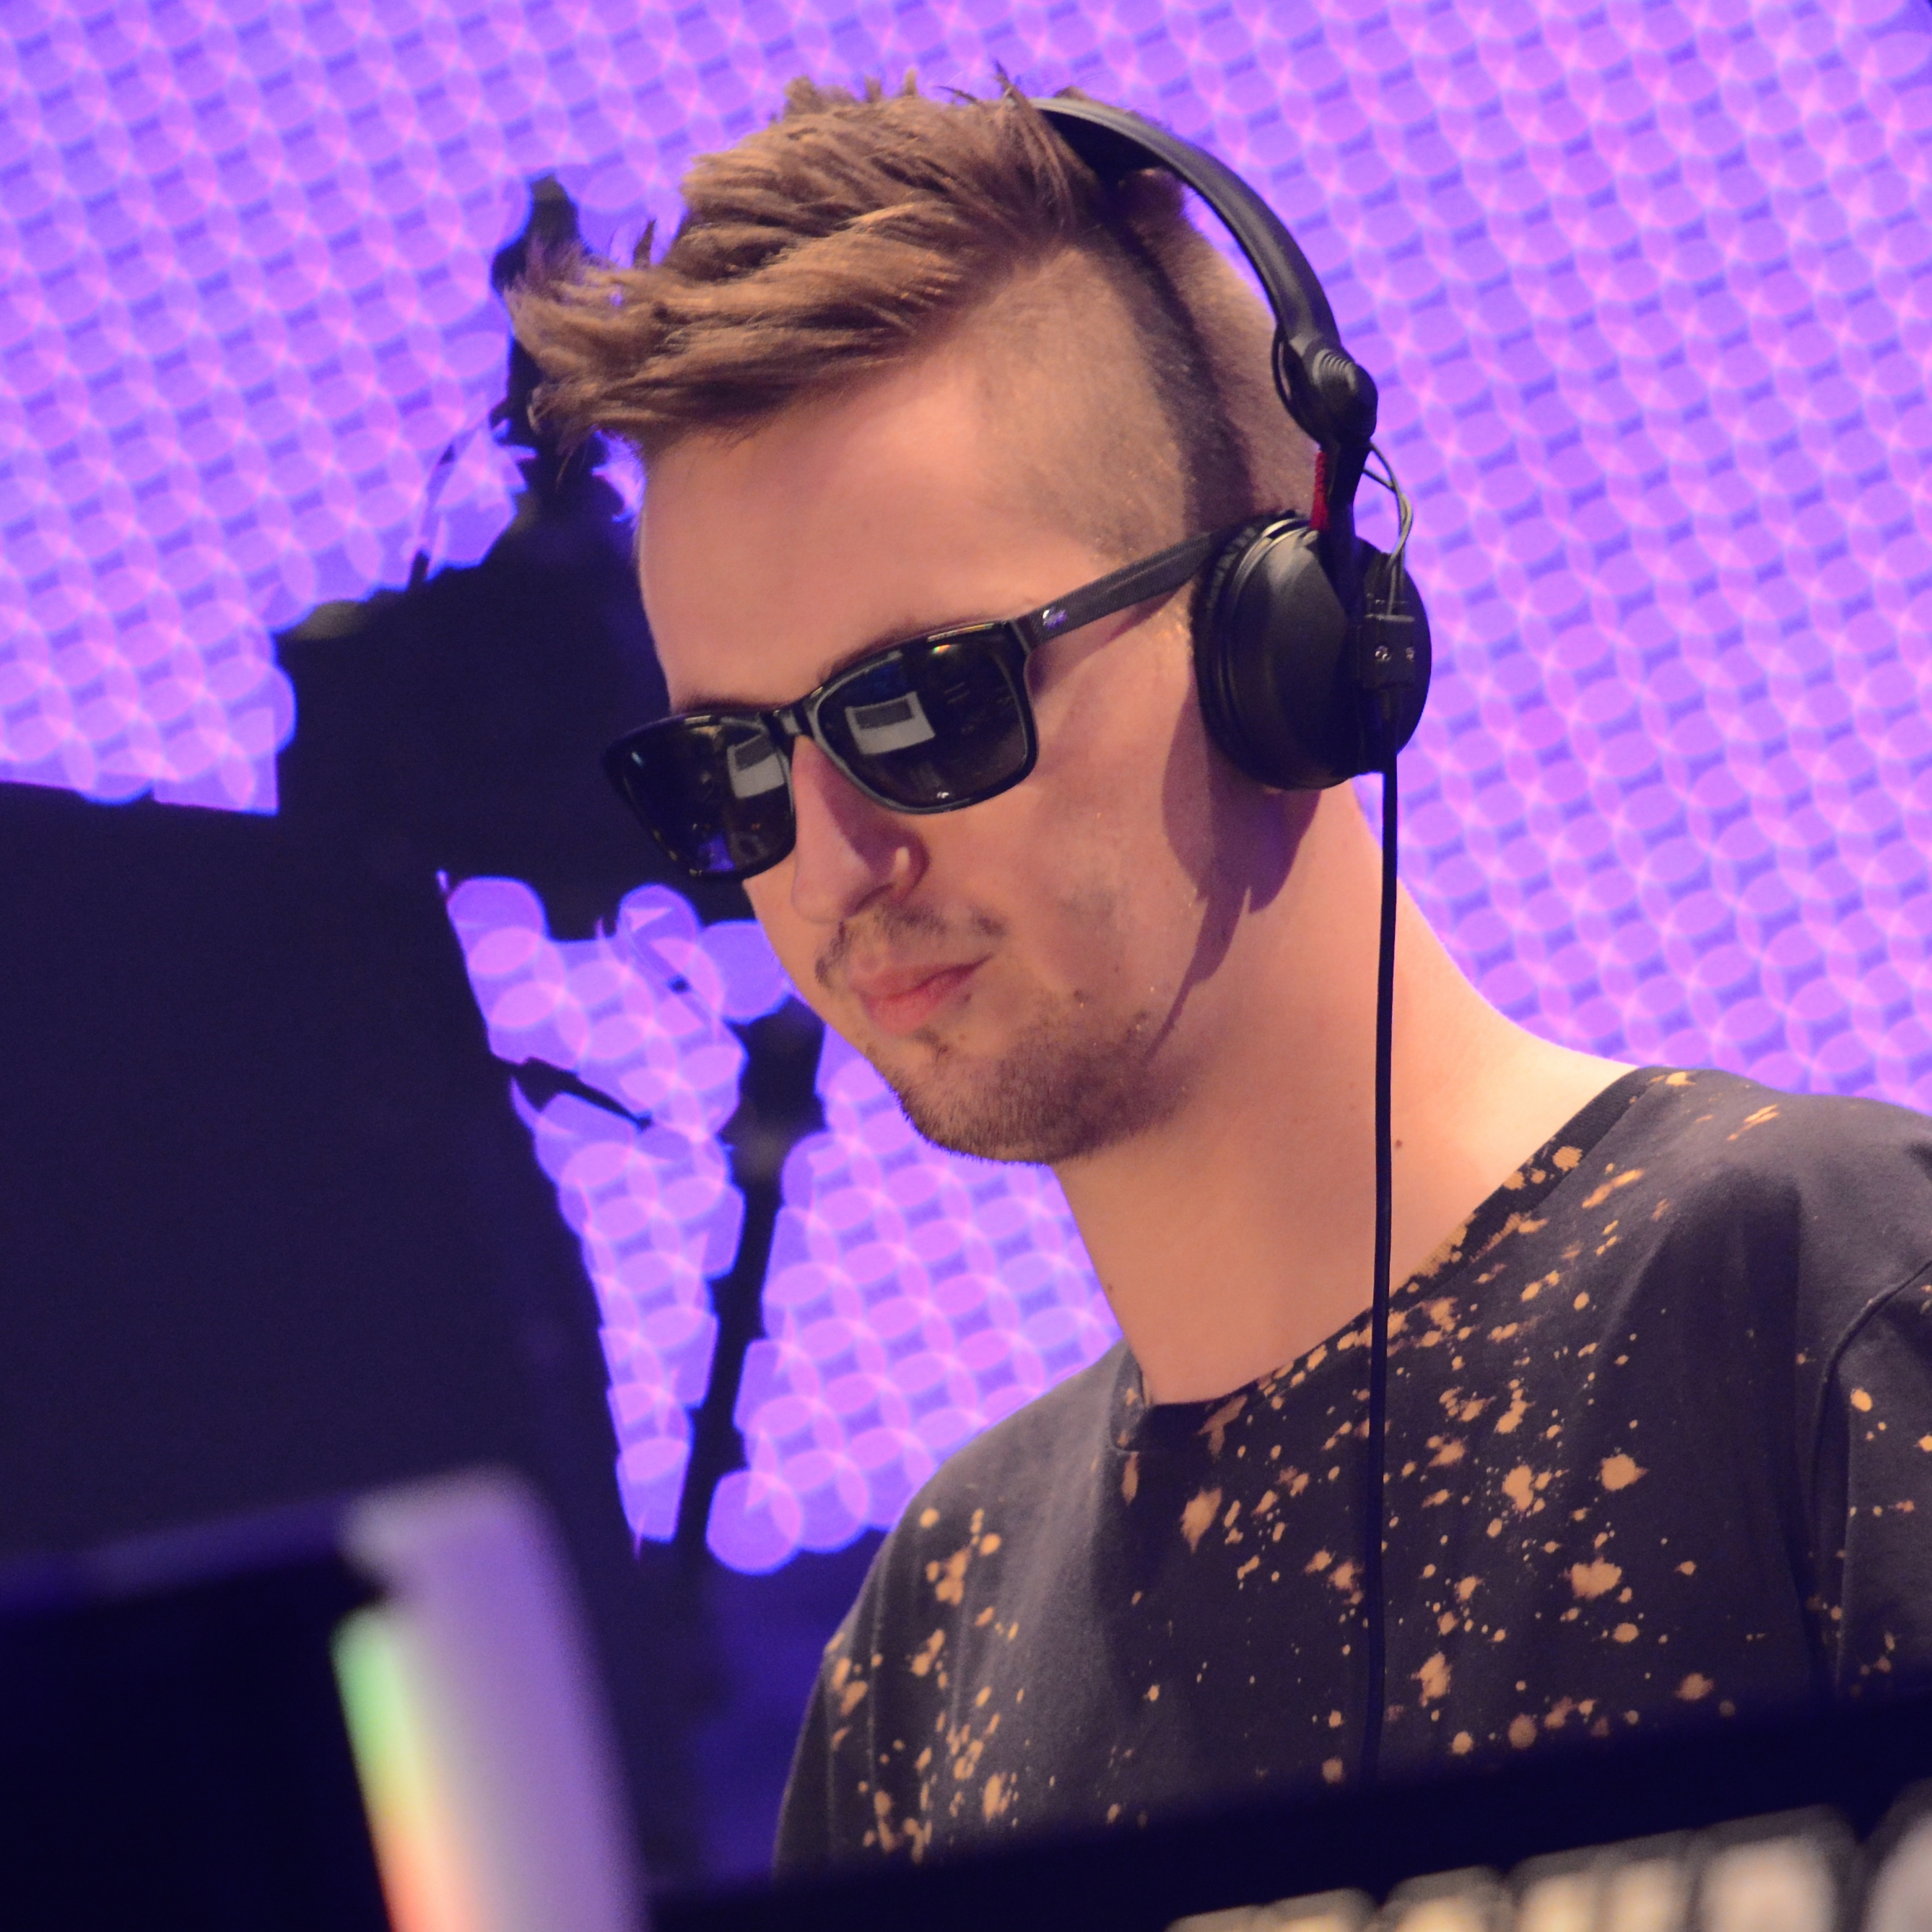 The 30-year old son of father (?) and mother(?), 175 cm tall Robin Schulz in 2017 photo